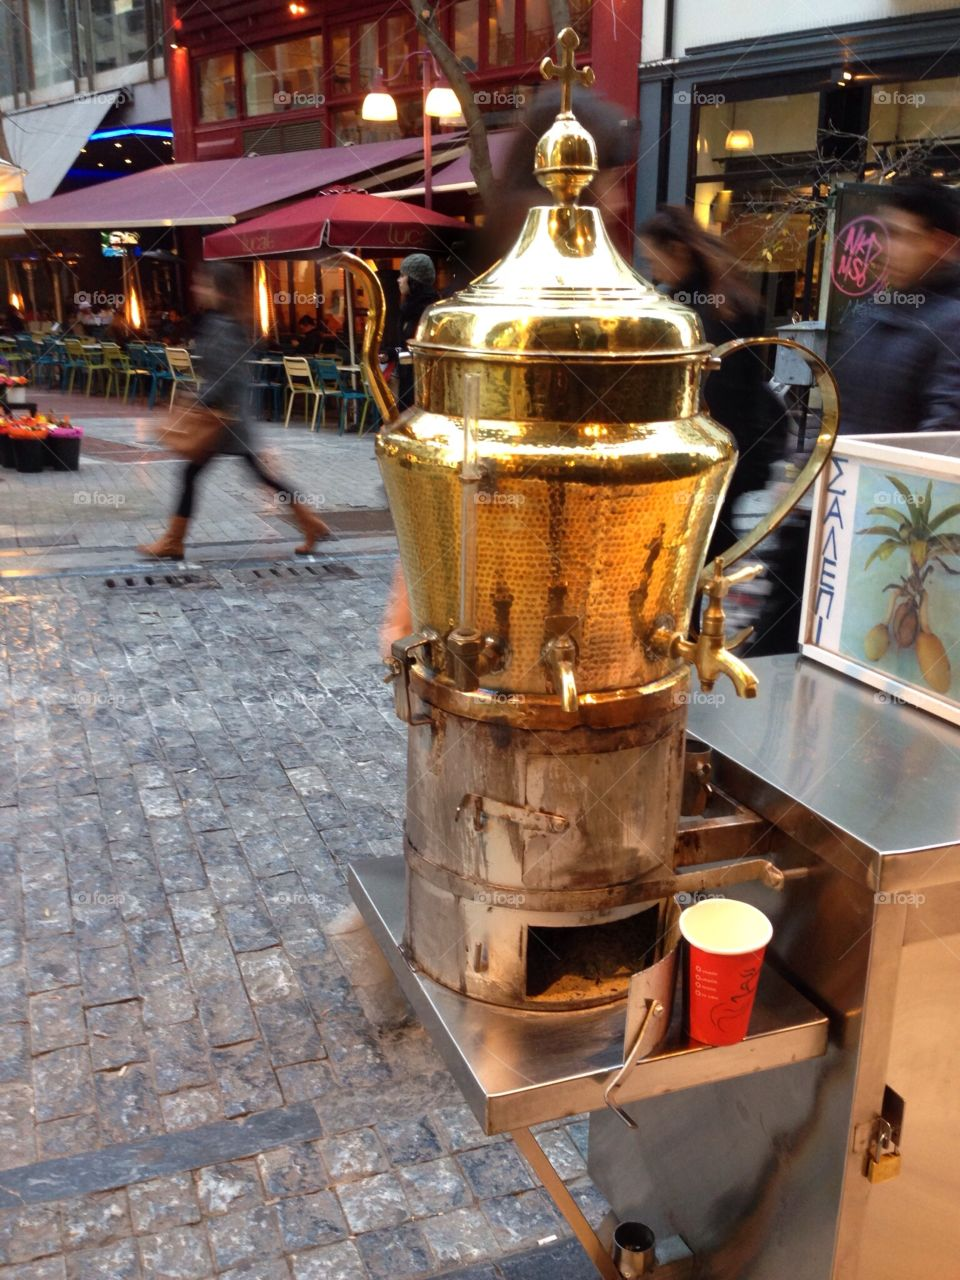 Coffee on the go in Ermou street, Athens, Greece 💙🇬🇷☕️